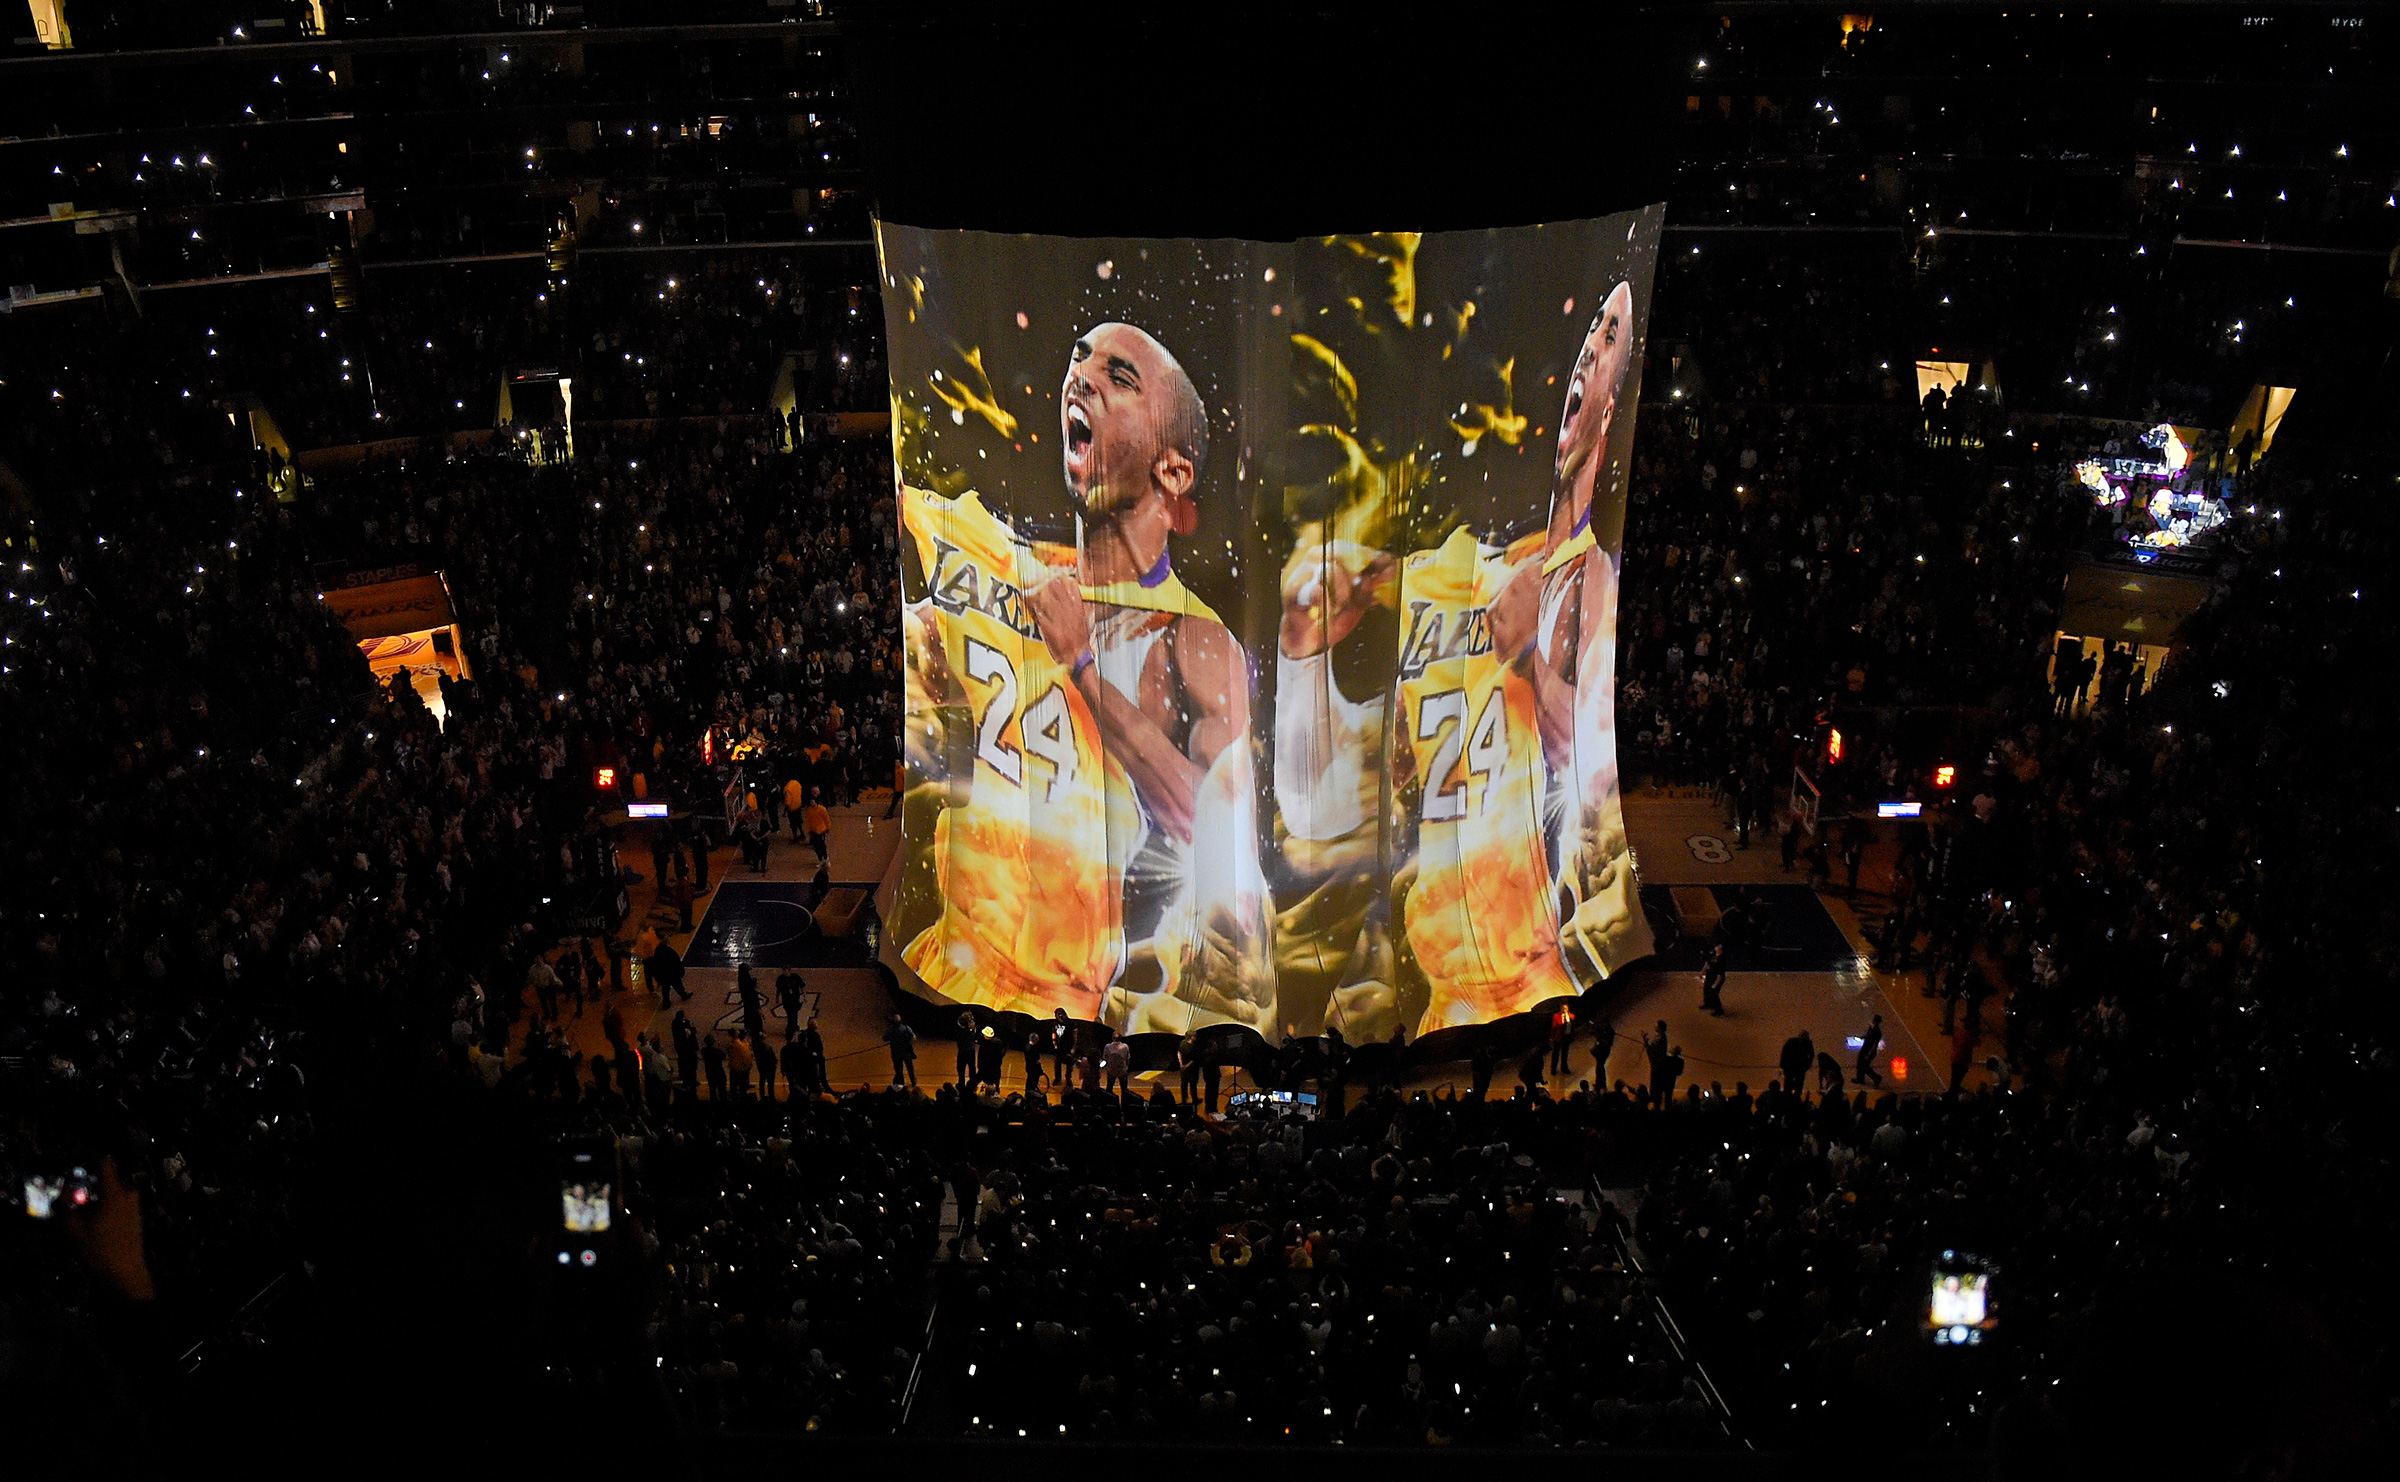 Los Angeles Lakers forward Kobe Bryant's image is displayed to the crowd during a ceremony before Bryant's last game on April 13, 2016.